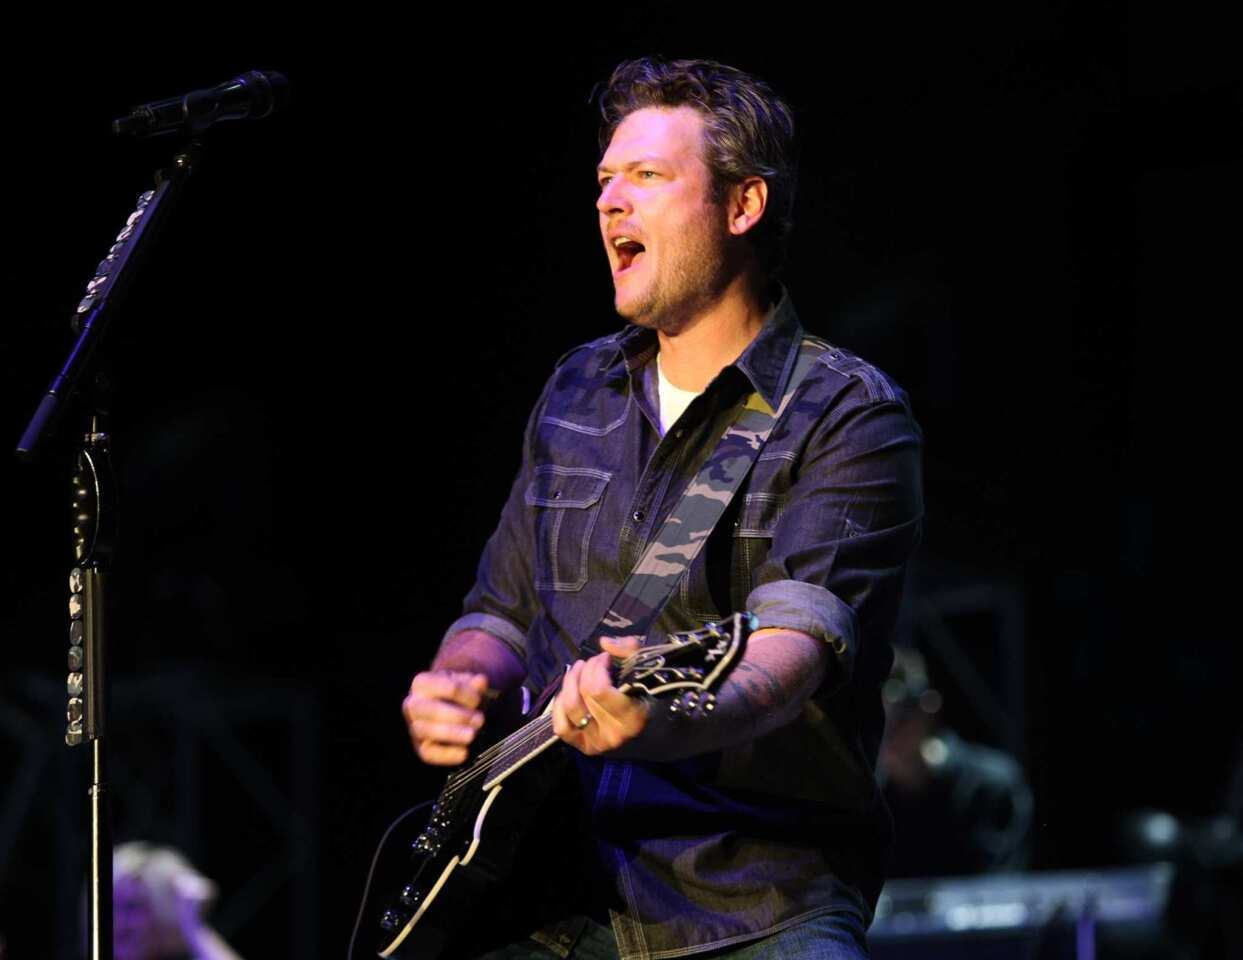 """Entertainer of the Year WINNER Song of the Year: """"Over You"""" (Miranda Lambert and Blake Shelton) WINNER Male Vocalist of the Year WINNER Single of the Year: """"God Gave Me You"""" (Produced by Scott Hendricks)"""